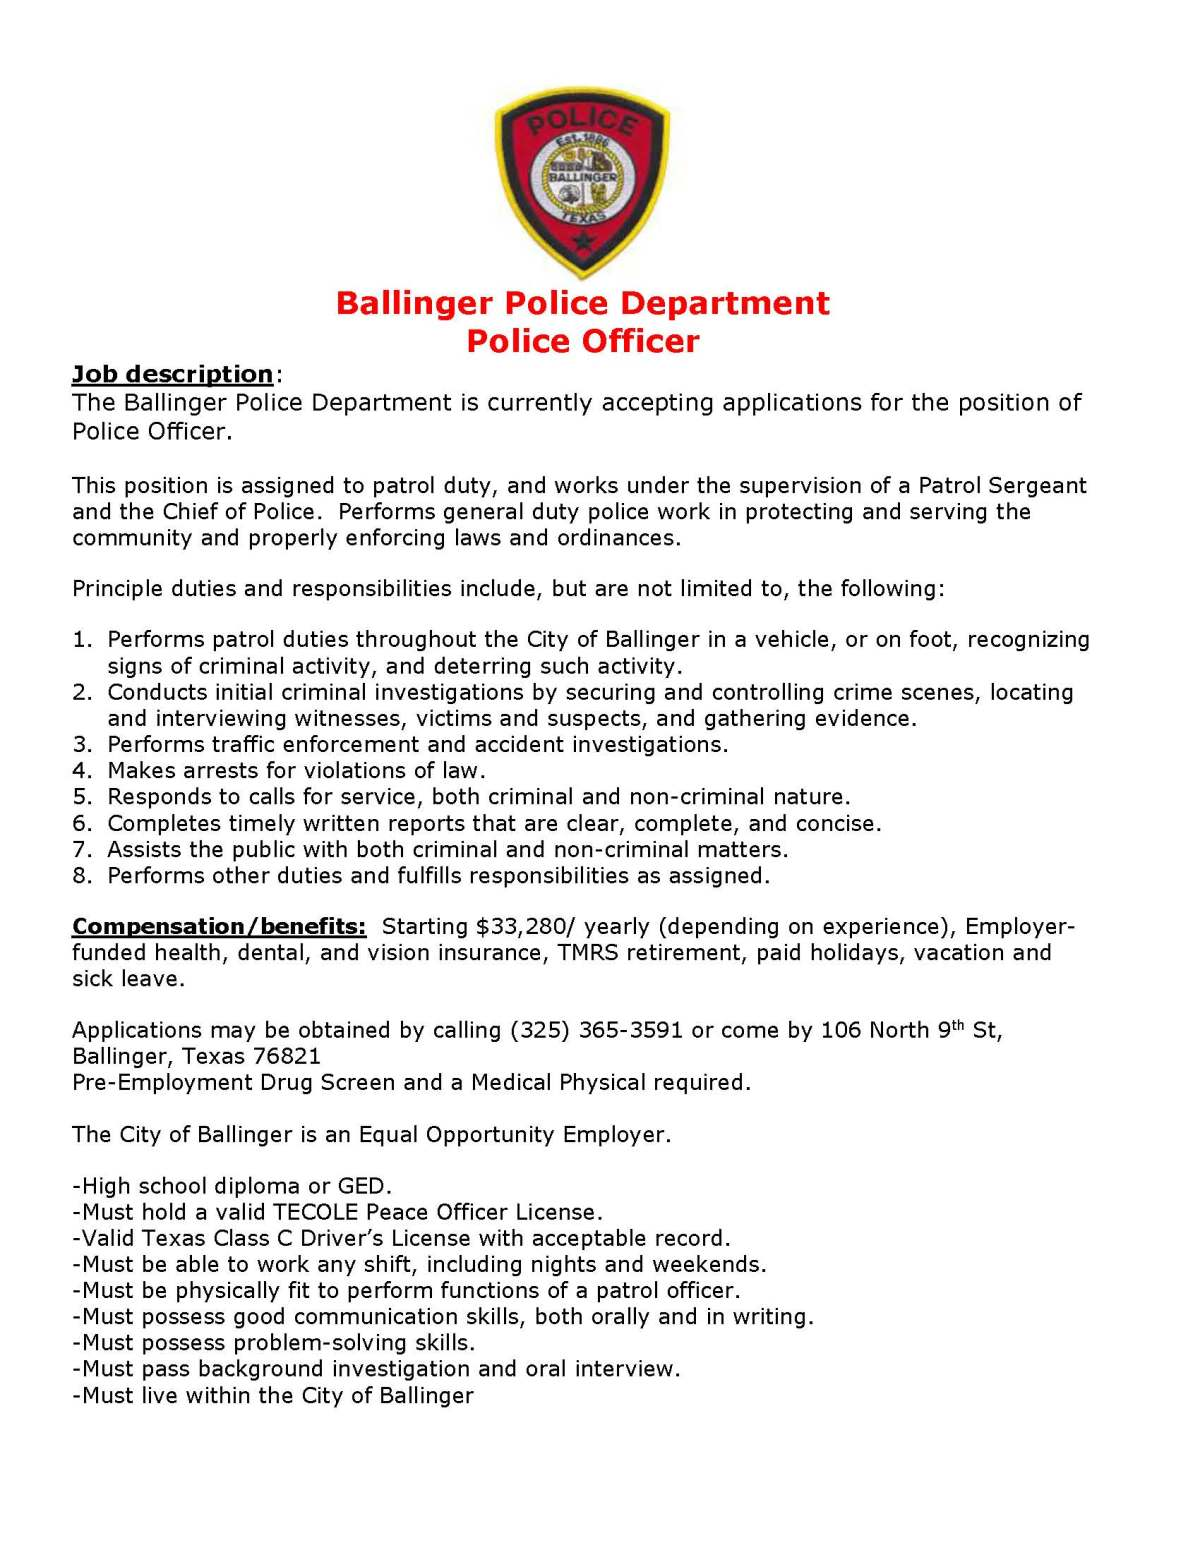 Police Officer Job Opening